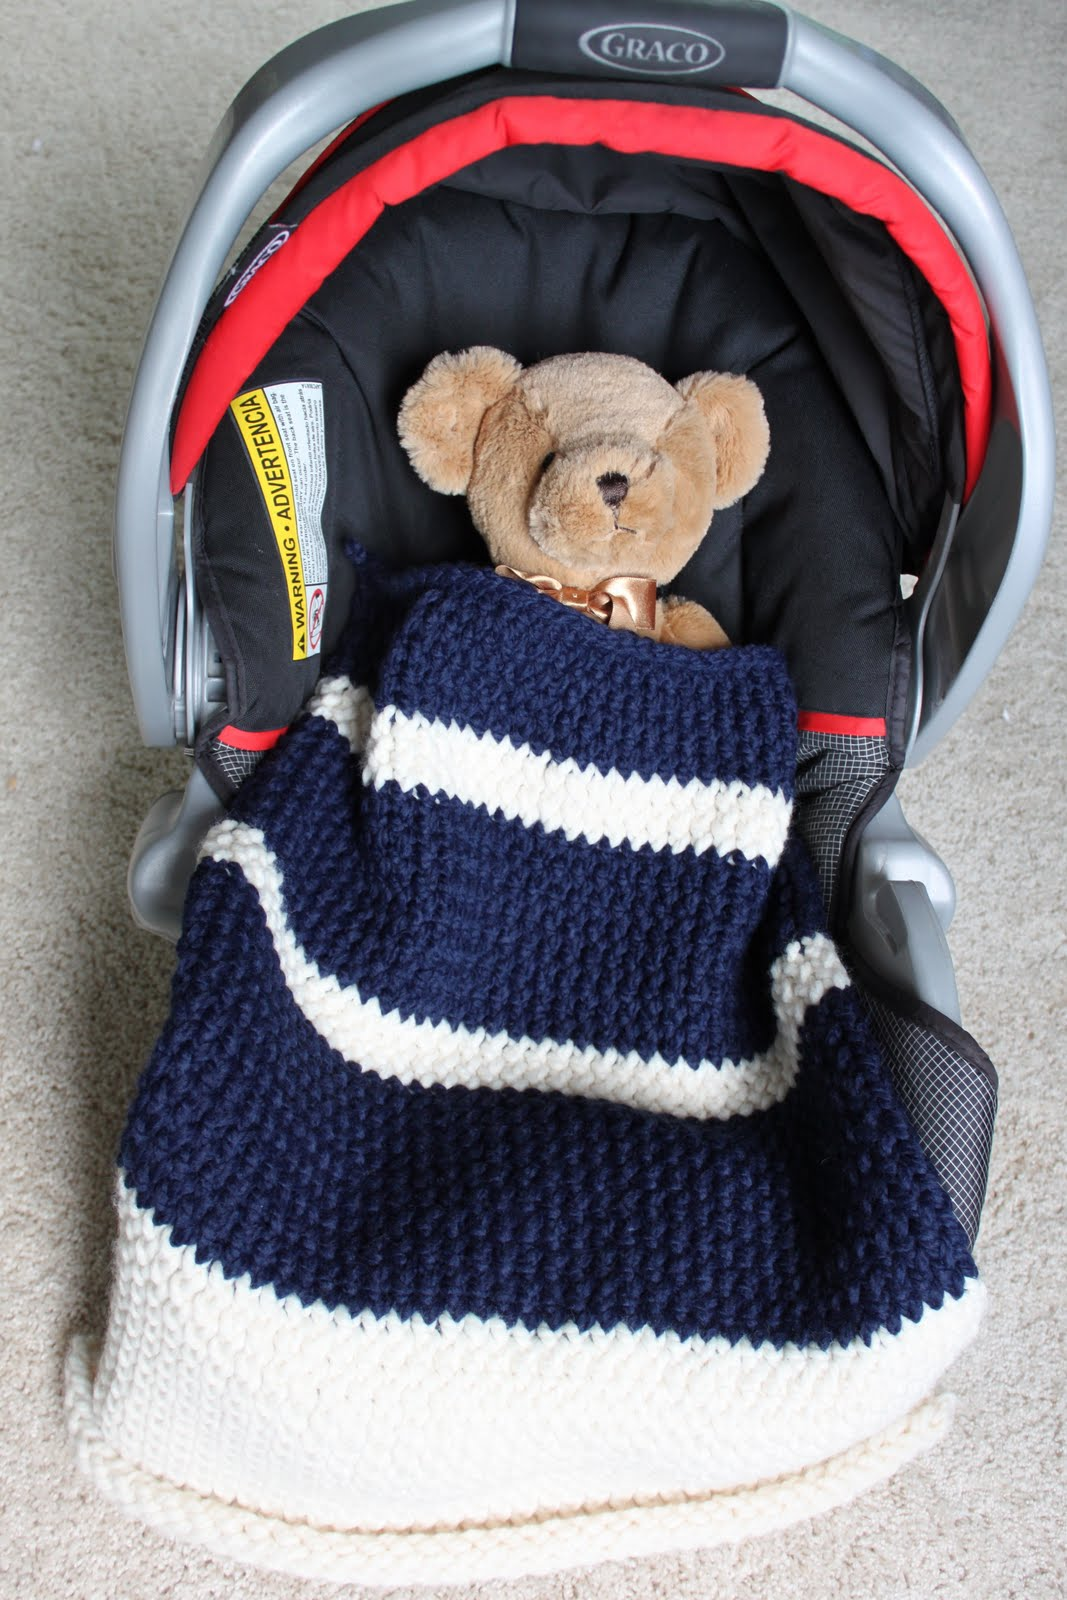 Car Seat Blanket Knitting Pattern : CREATE STUDIO: Knit Car Seat Blanket